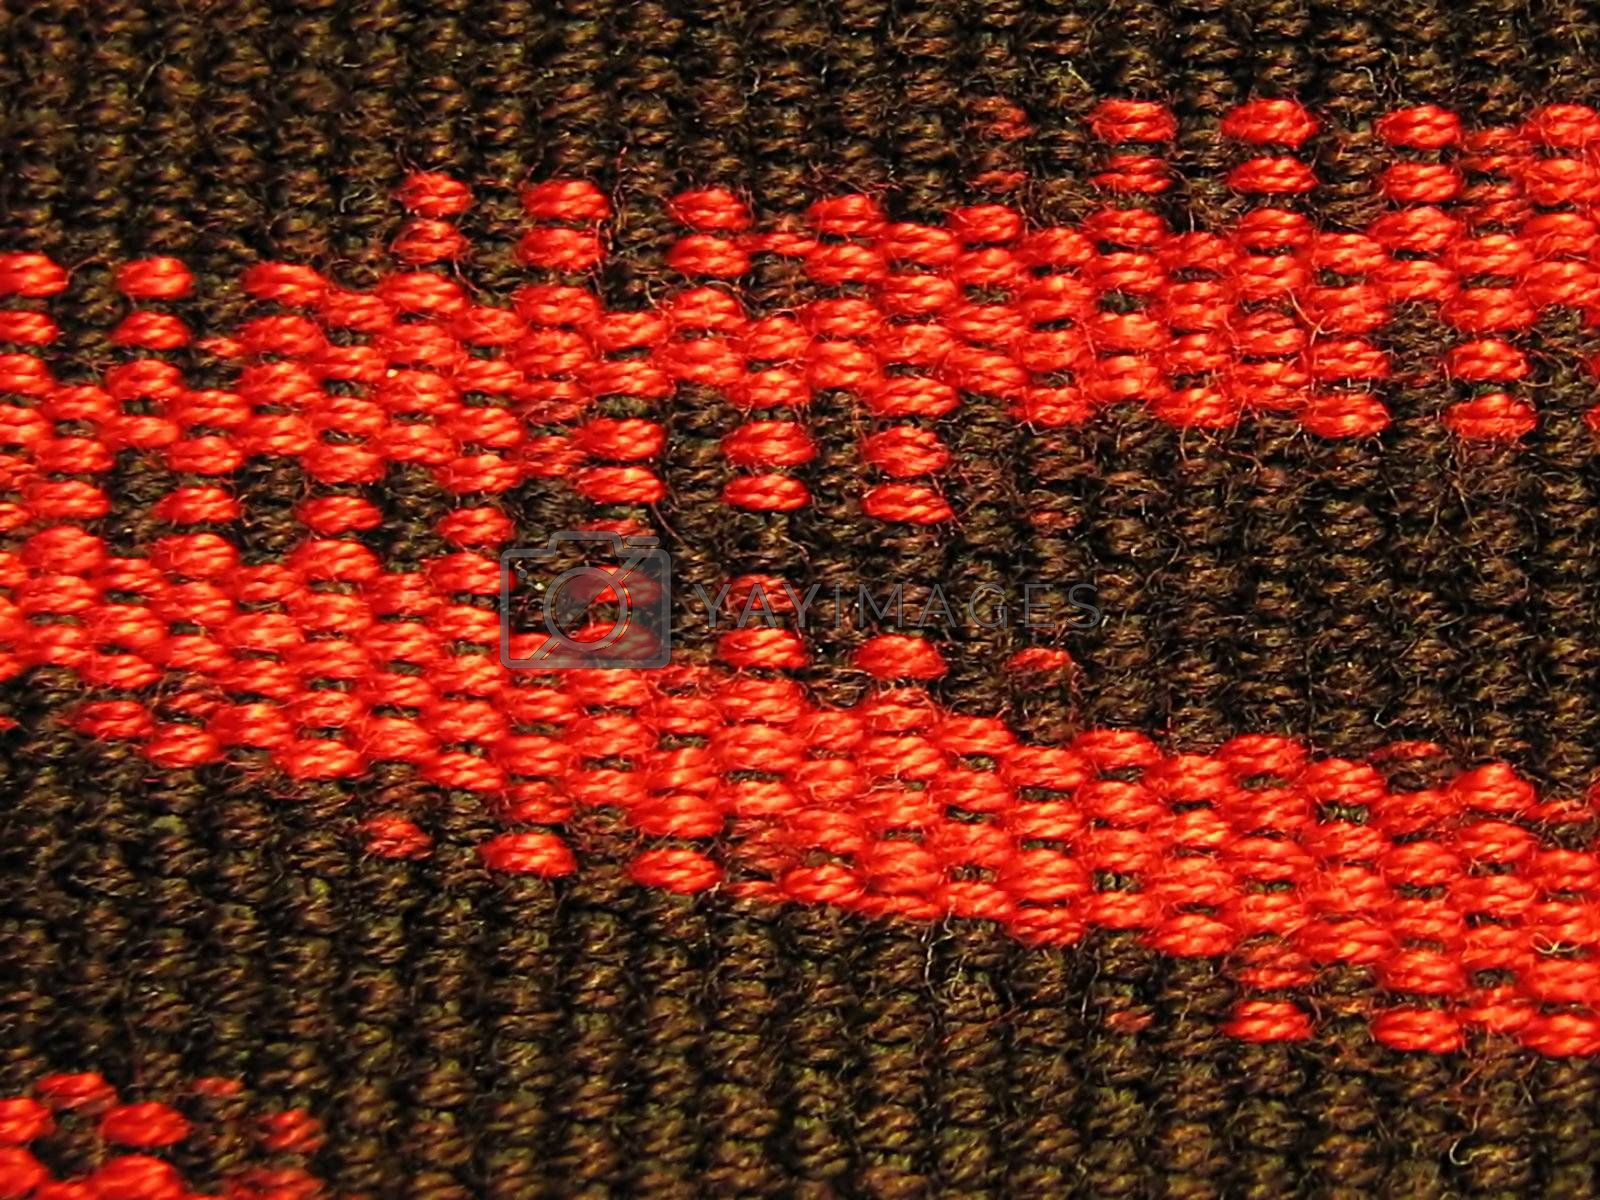 Red & Black Fabric Macro by llyr8